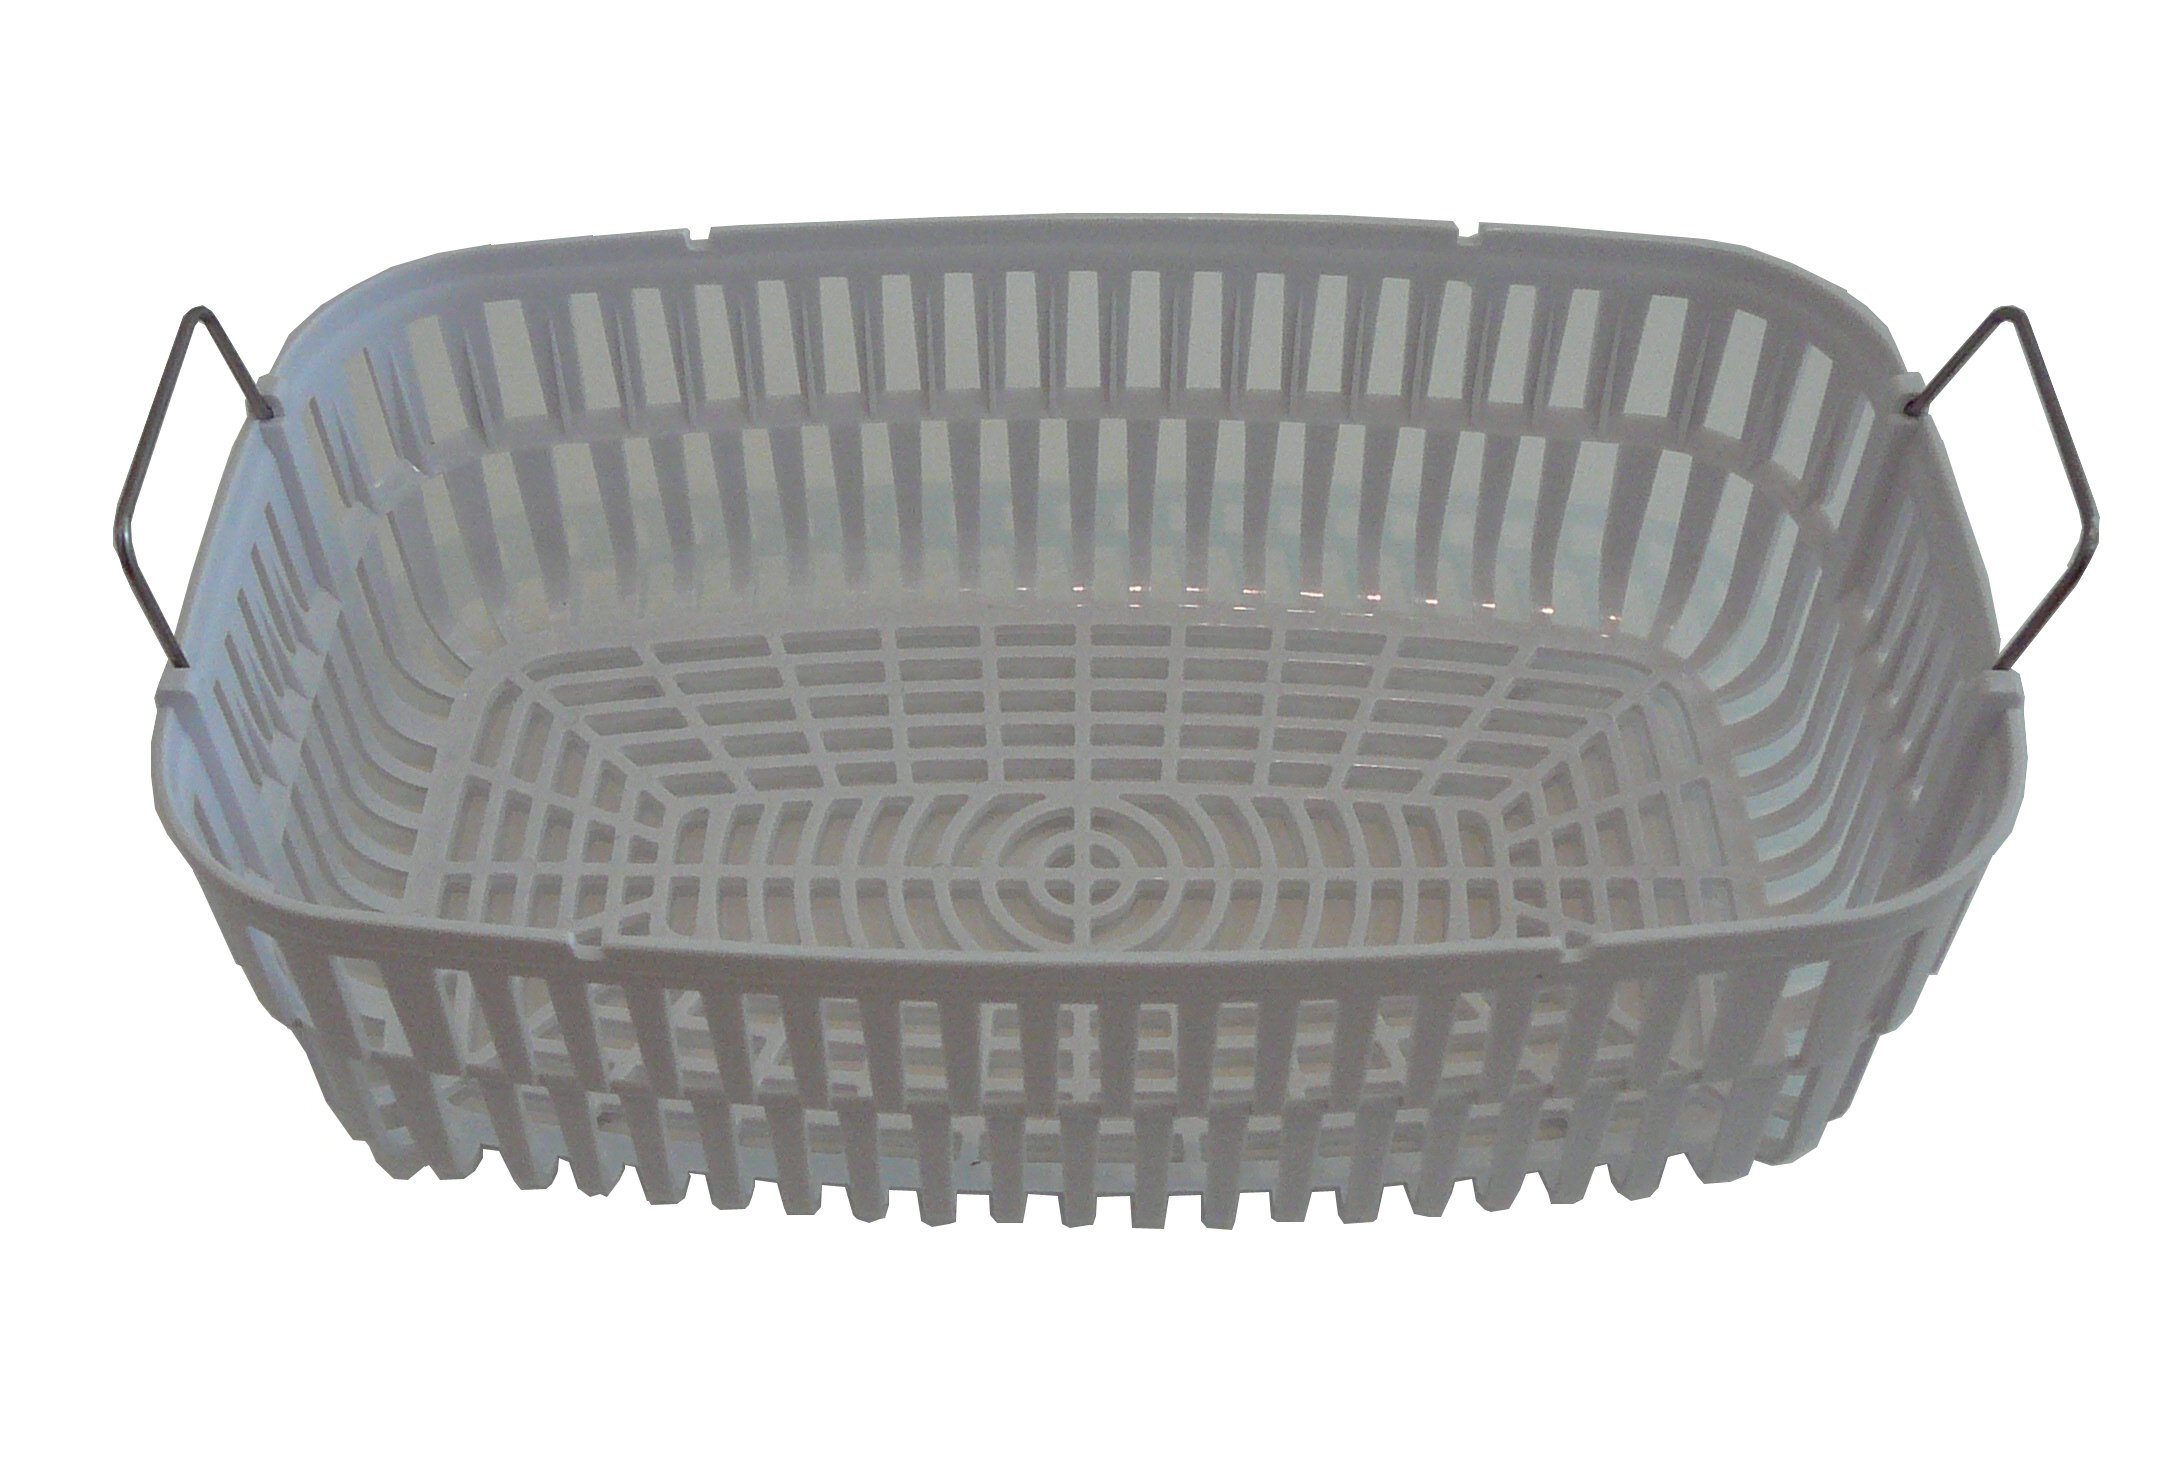 iSonic PB4820A Plastic Basket for Ultrasonic Cleaner P4820 by iSonic